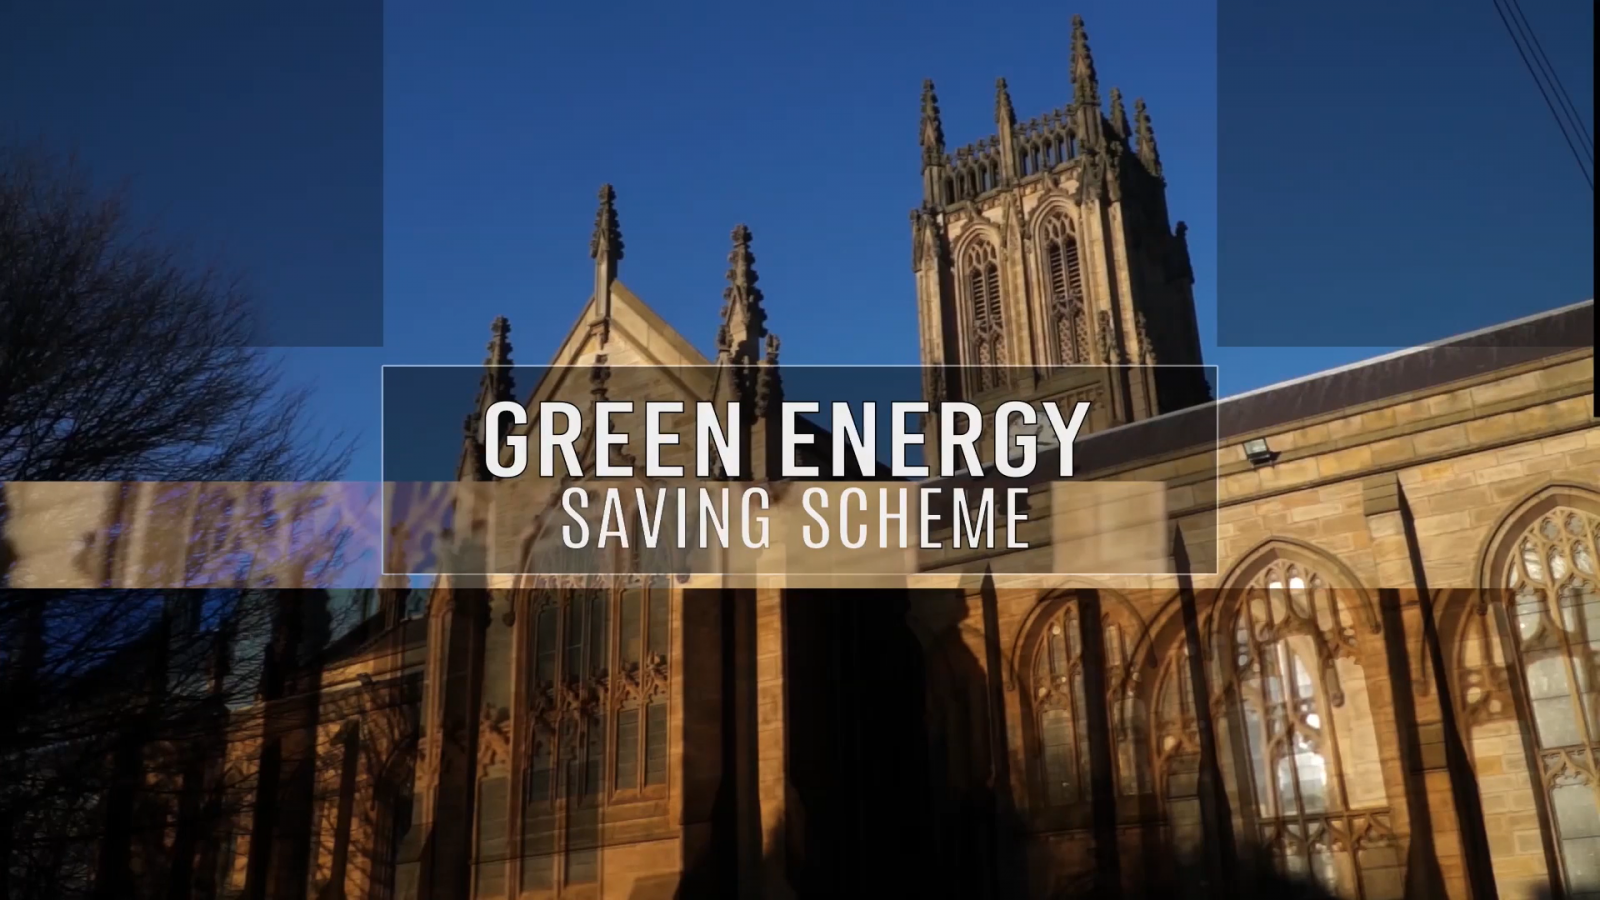 58b5f49e0281 The Green Energy Saving Scheme, which has led to the reduction of 2,142  tonnes of annual carbon reductions in churches since its introduction 3  years ago, ...